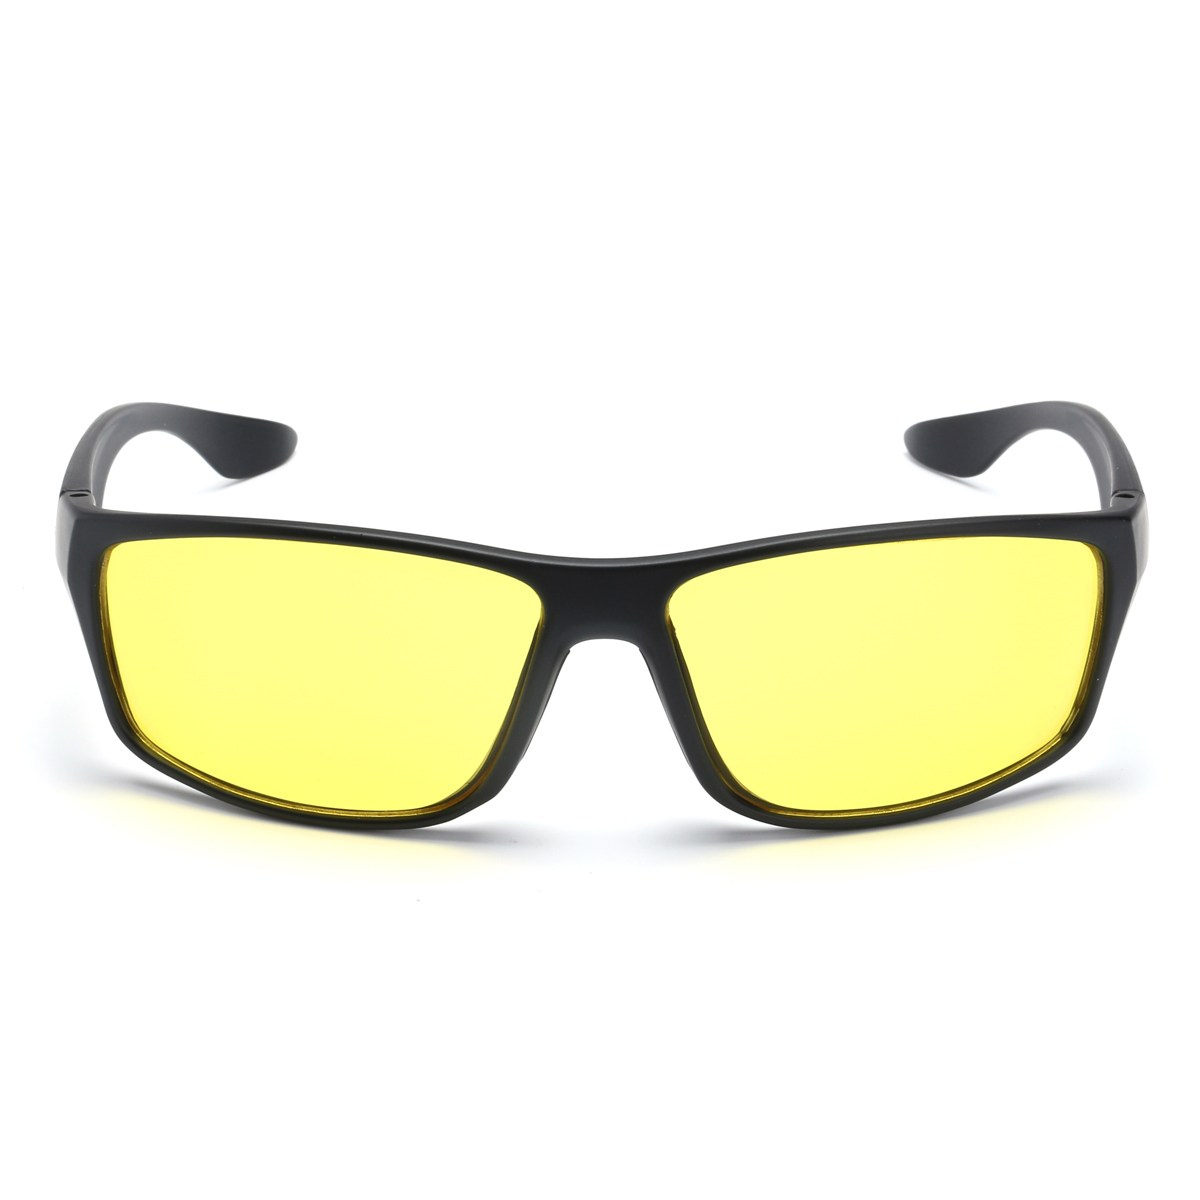 Night Driving Glasses Anti Glare Driver Safety Sunglasses Safety Eye Protection